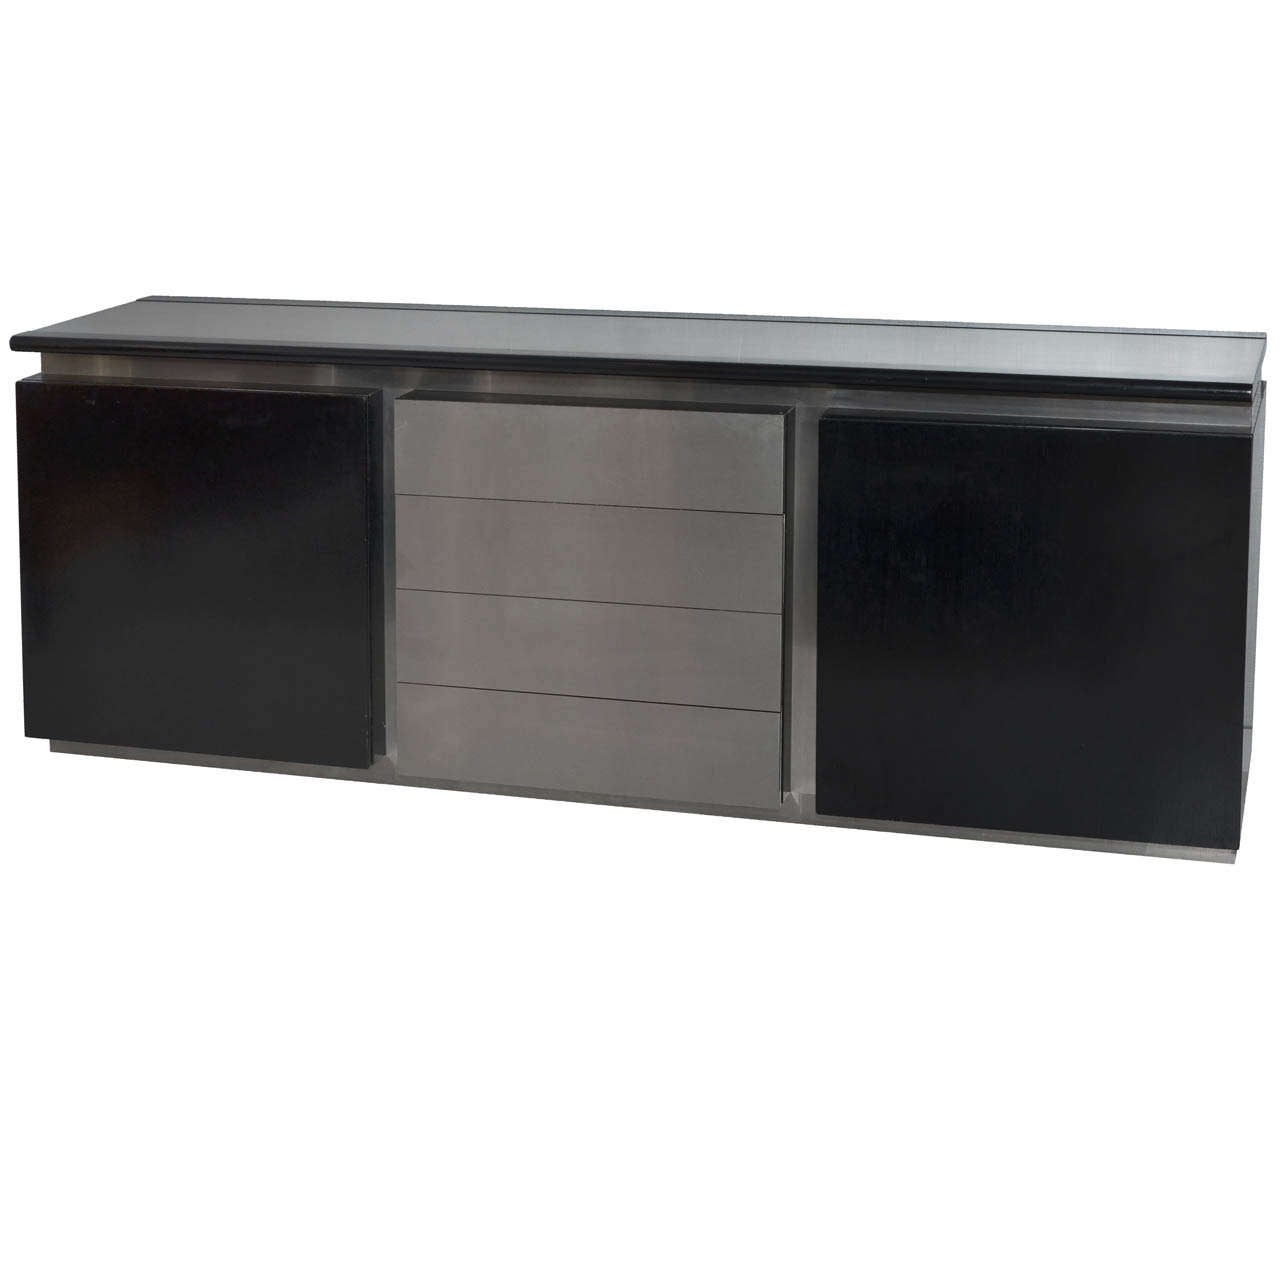 1970s enfilade buffet by acerbis at 1stdibs. Black Bedroom Furniture Sets. Home Design Ideas